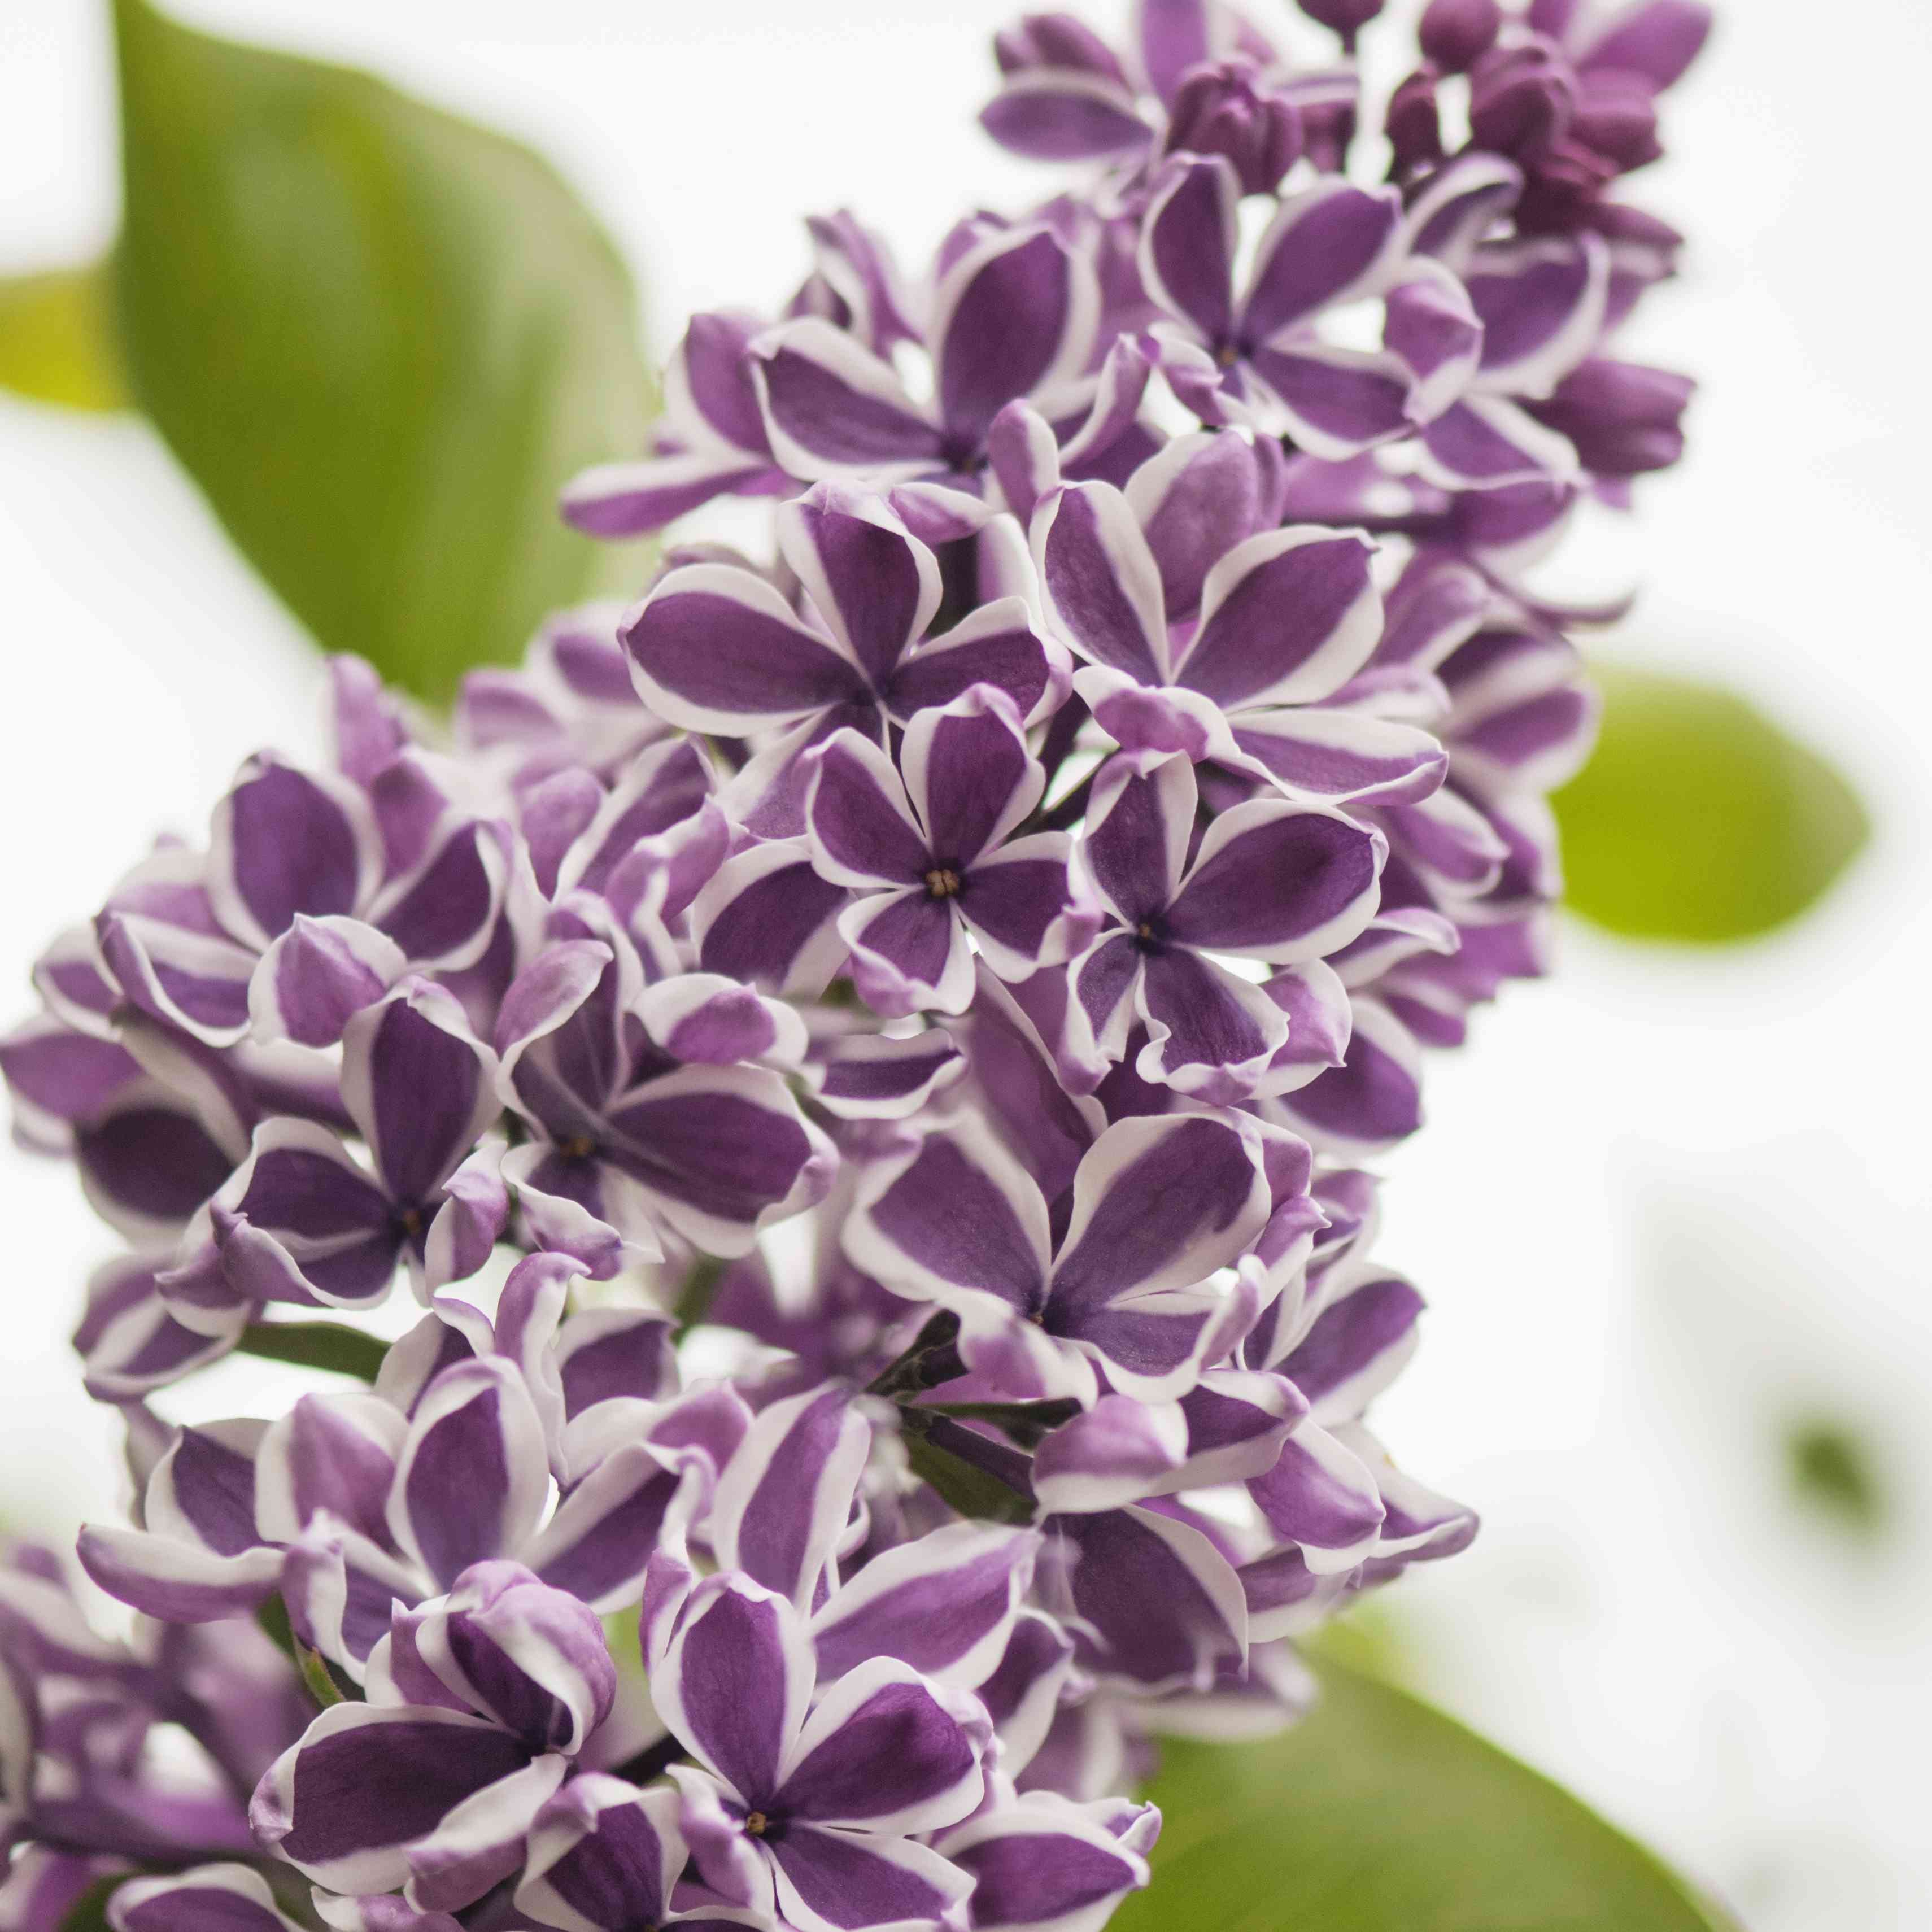 The Sensation lilac with purple-and-white flowers